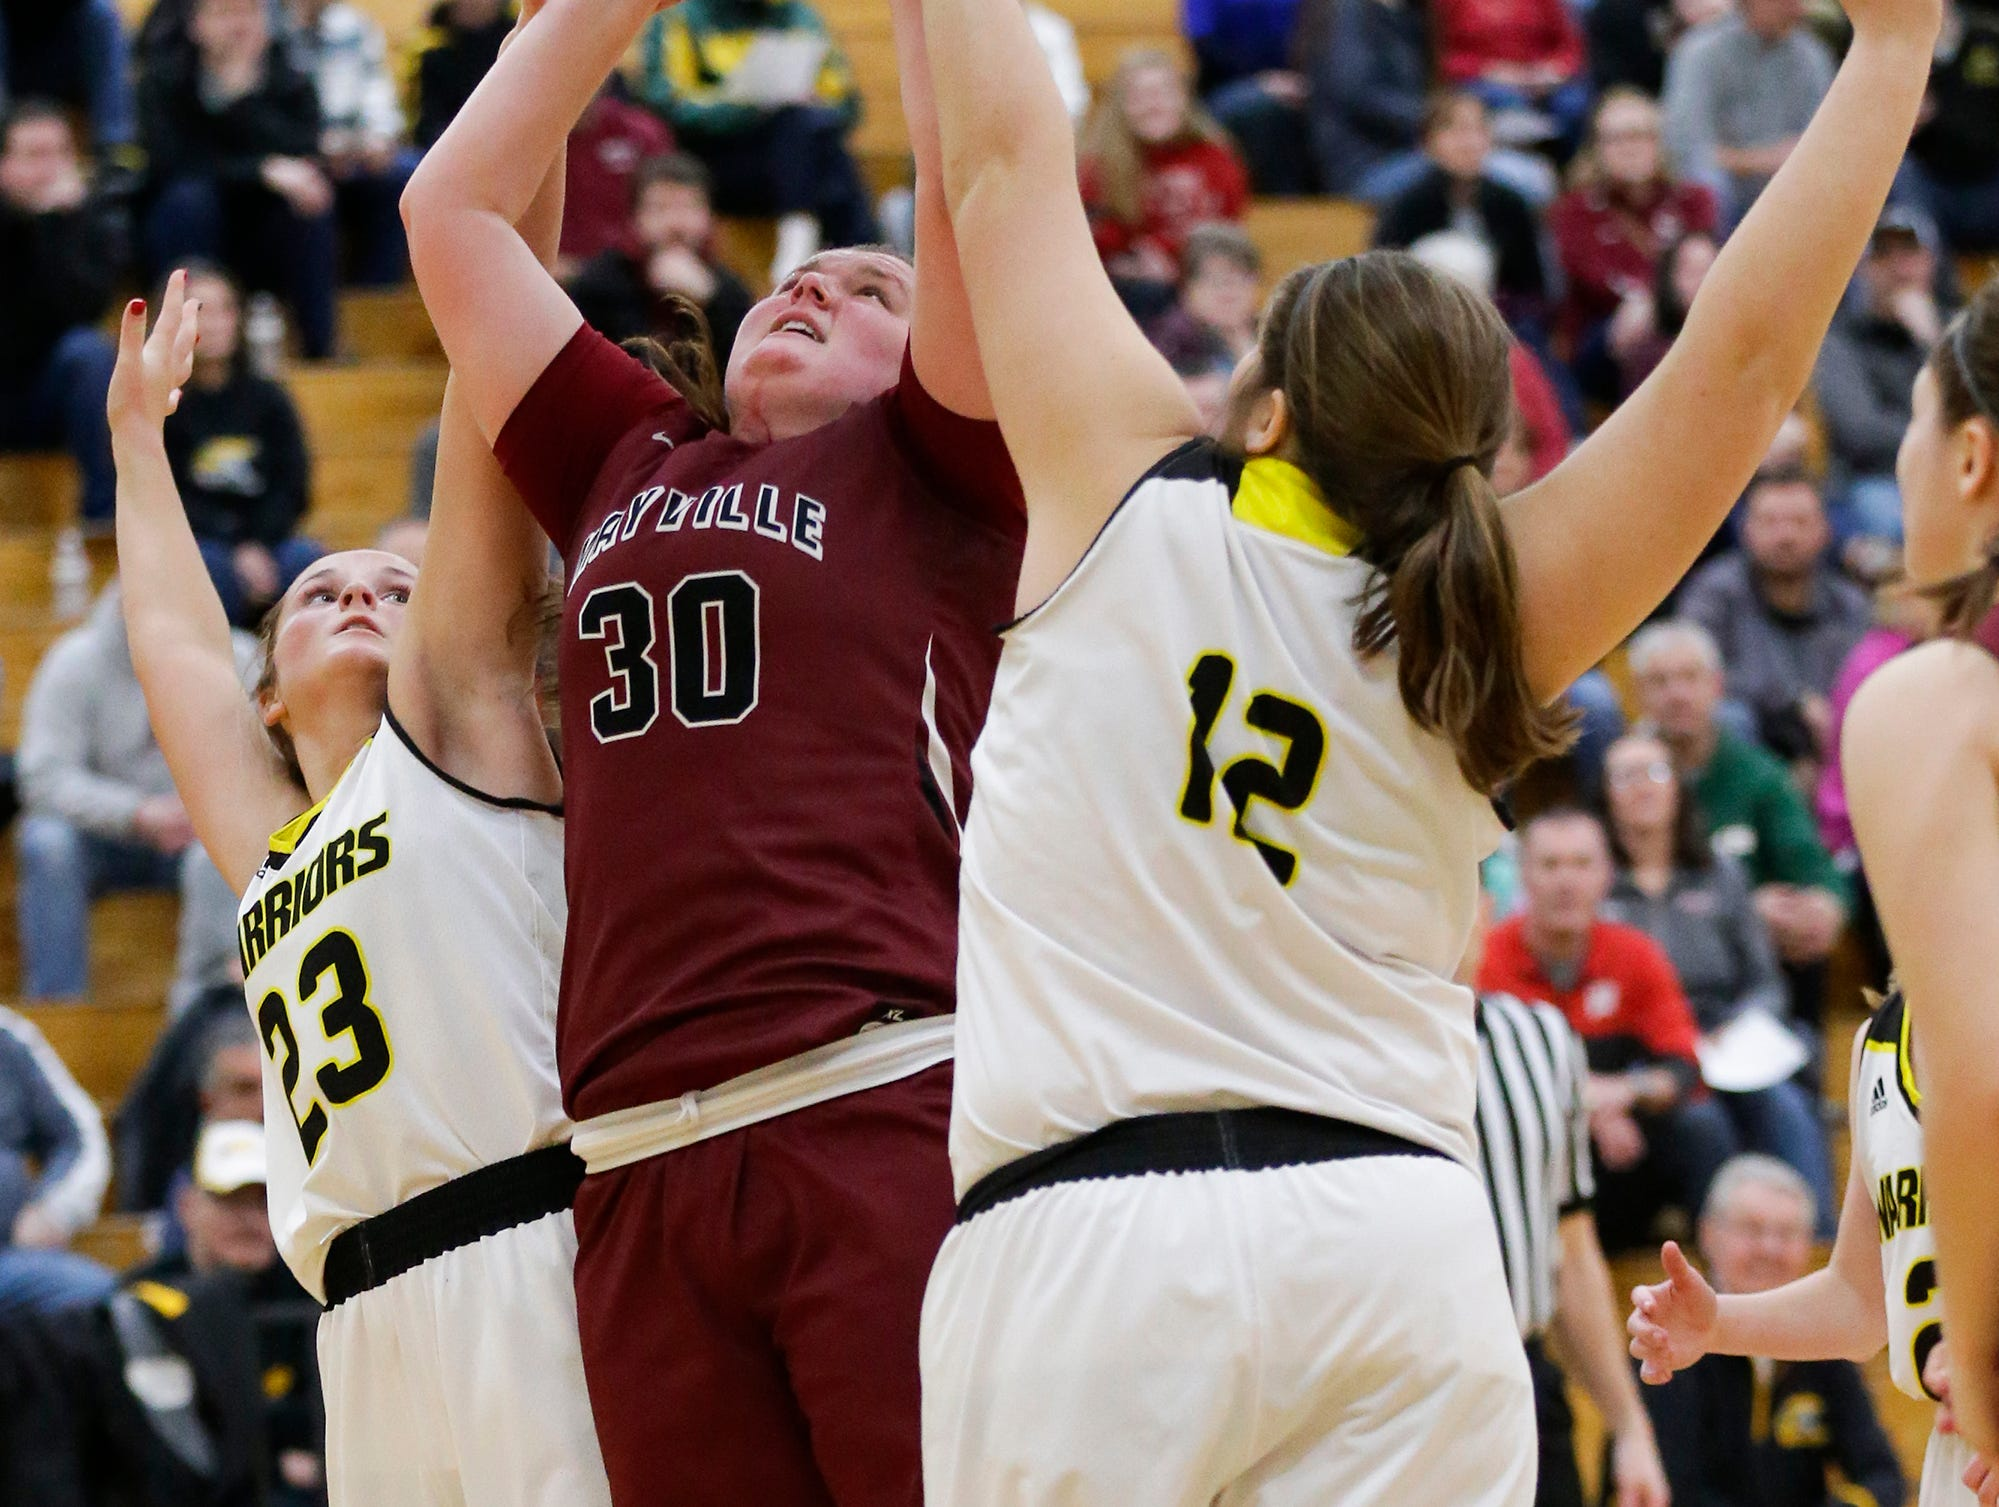 Waupun High School girls basketball's Claire Harder (23) and Kelli Bonack (12) defend against Mayville High School's Sydney Schultz (30) Saturday, February 23, 2019 during their WIAA Division 4 sectional quarterfinal game in Waupun. Waupun won the game 62-45. Doug Raflik/USA TODAY NETWORK-Wisconsin